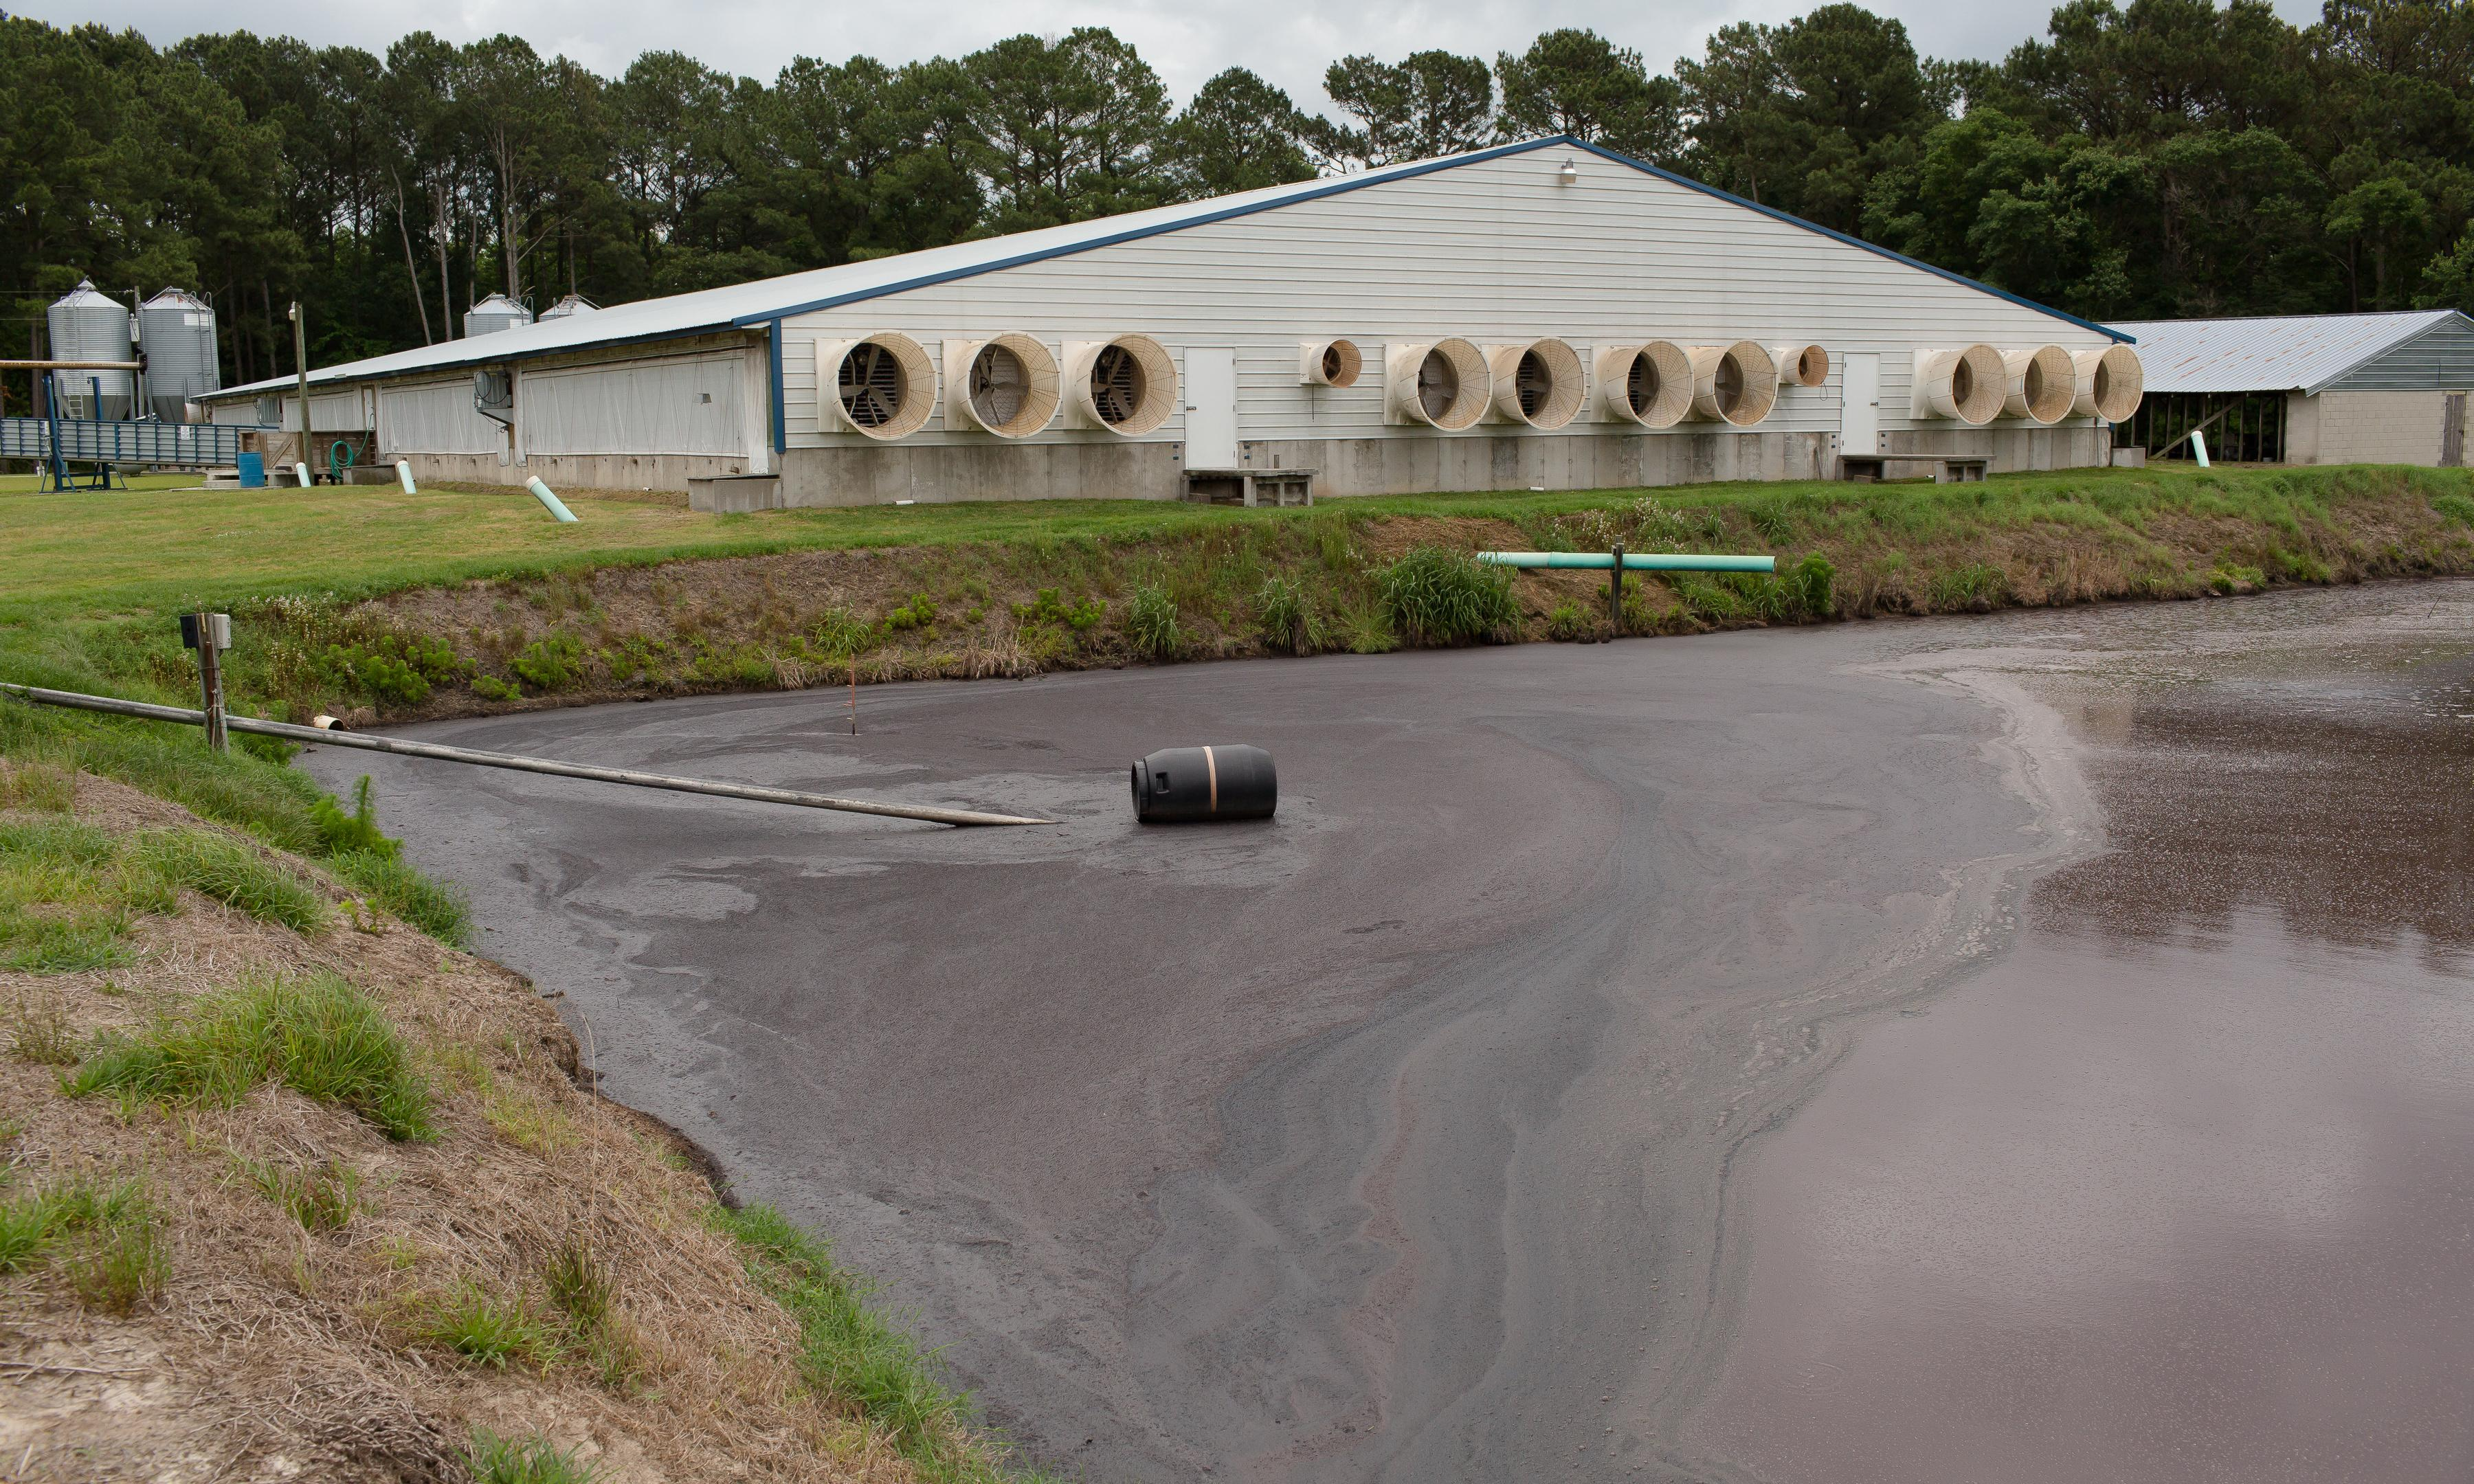 Factory farms are polluting our water with hog manure. Democrats should take note